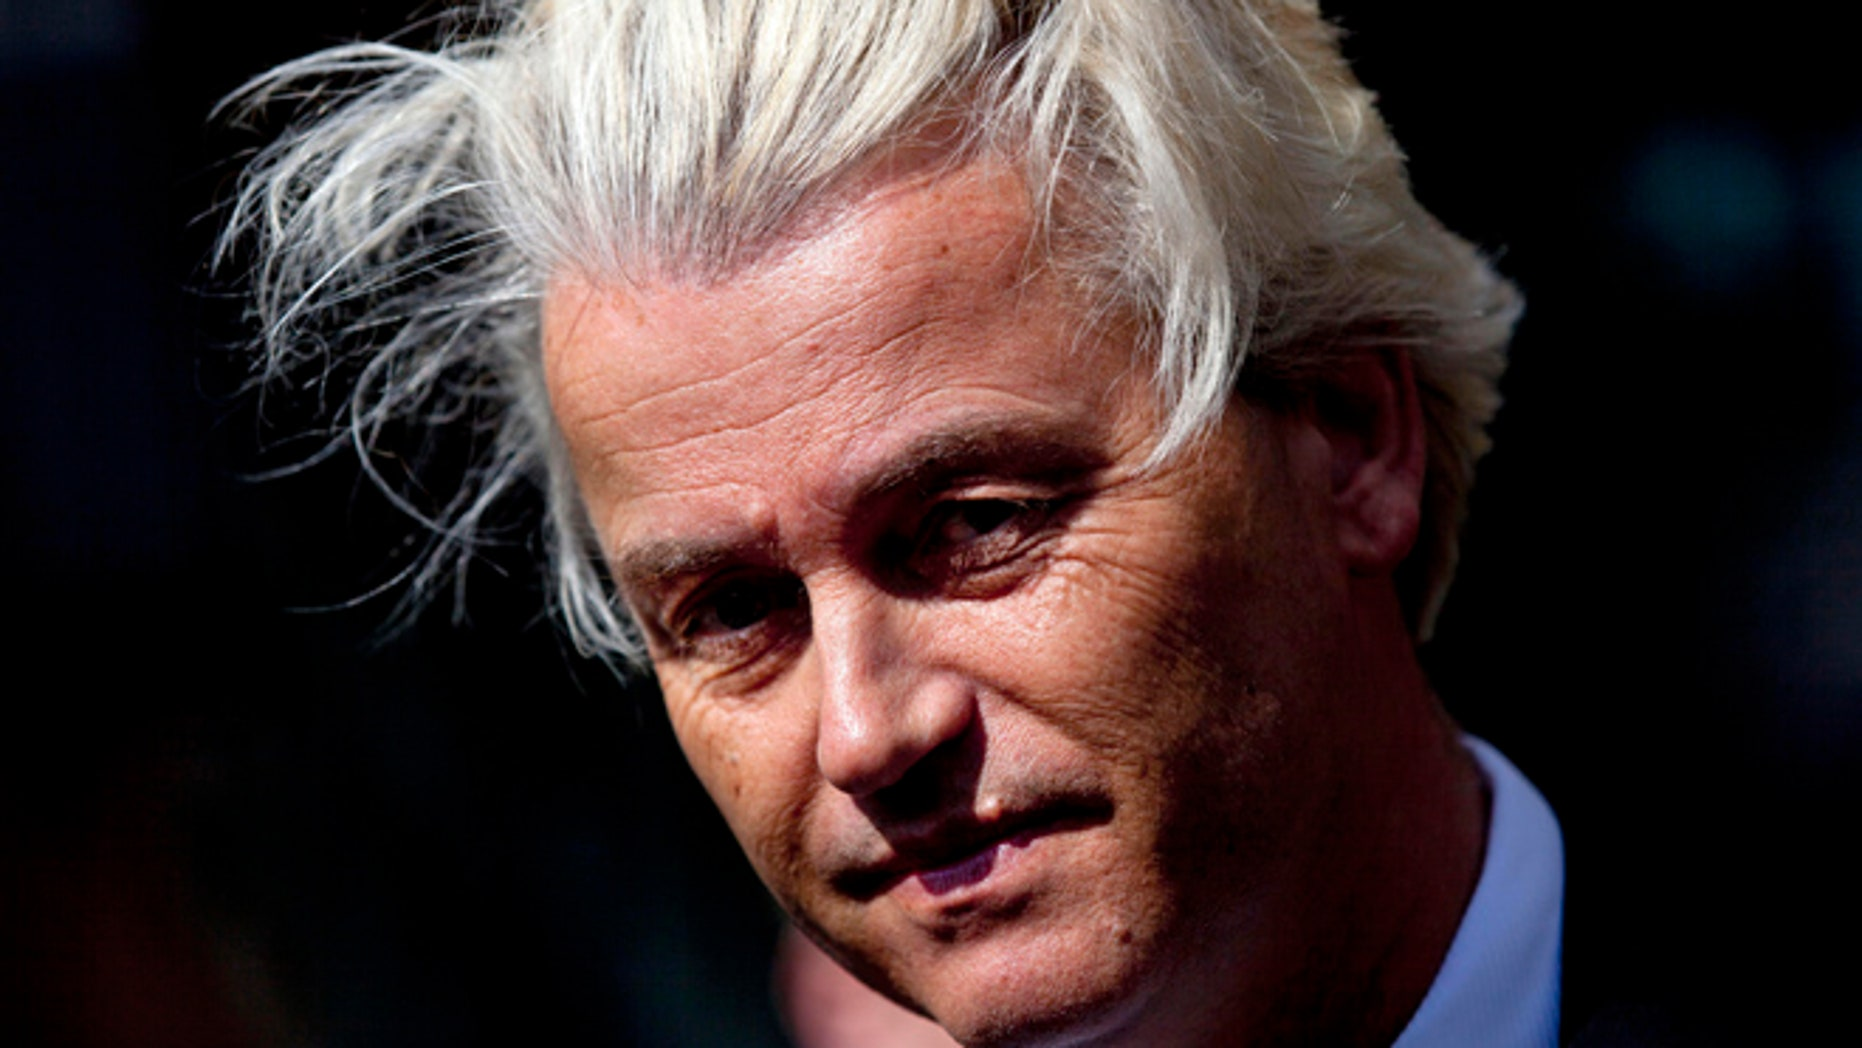 May 12, 2014: Dutch lawmaker Geert Wilders pauses, as he speaks to journalists outside the Dutch National Bank in Amsterdam.